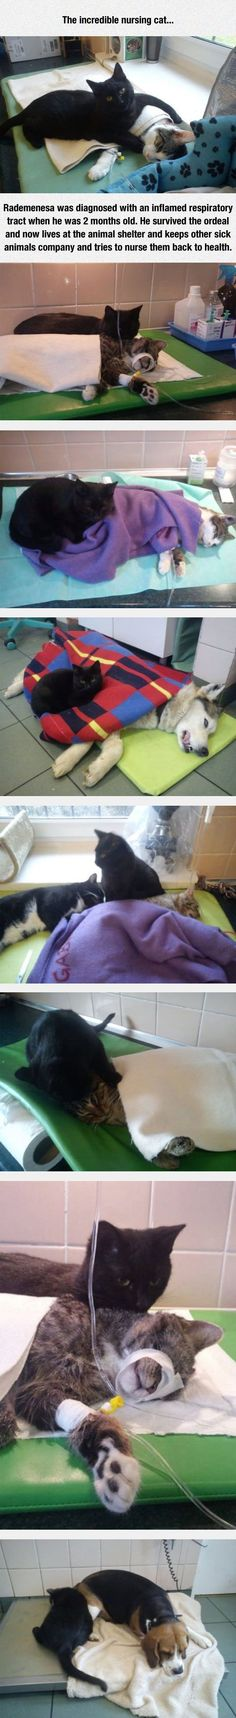 The Incredible Nursing Cat cute animals cat cats adorable amazing animal kittens pets kitten